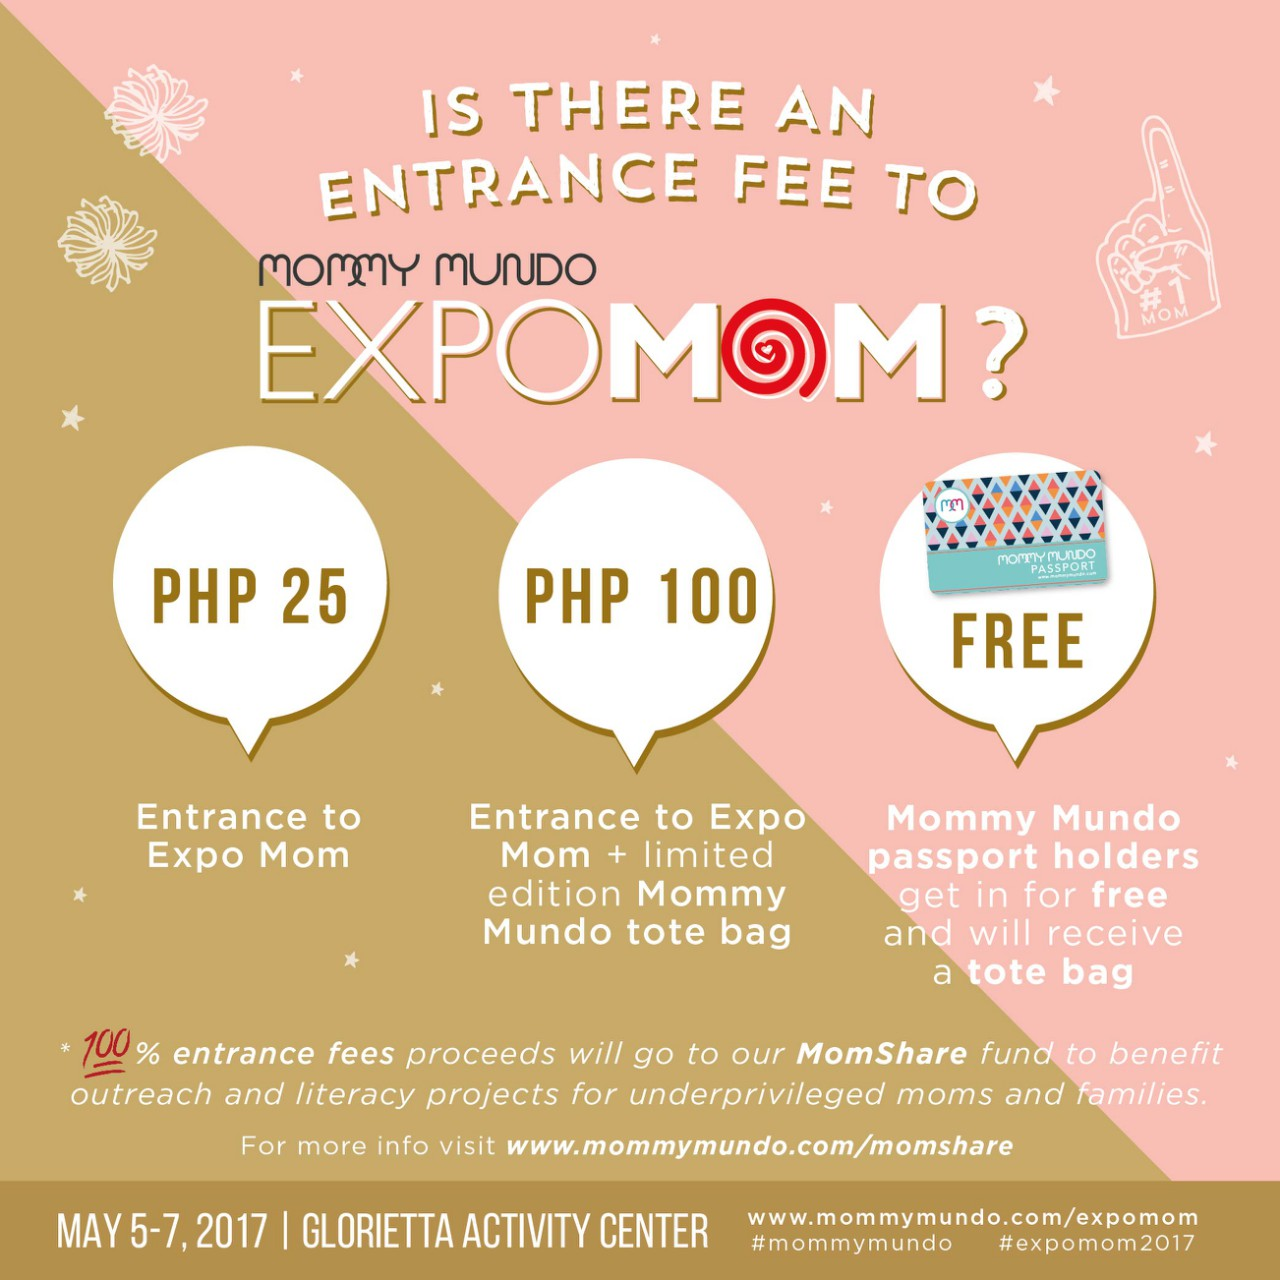 Guide to the Entrance Fee at Expo Mom 2017